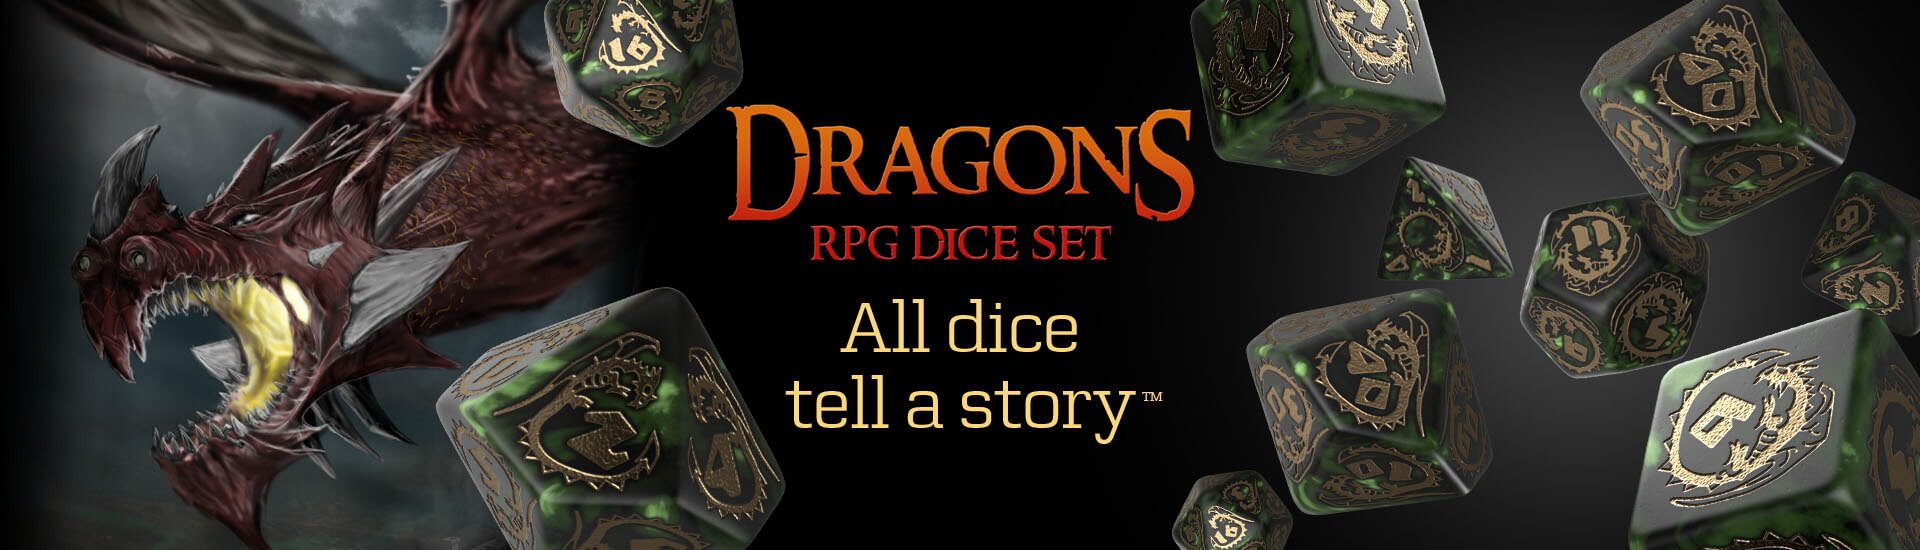 Dragons Bottle green & gold Dice Set